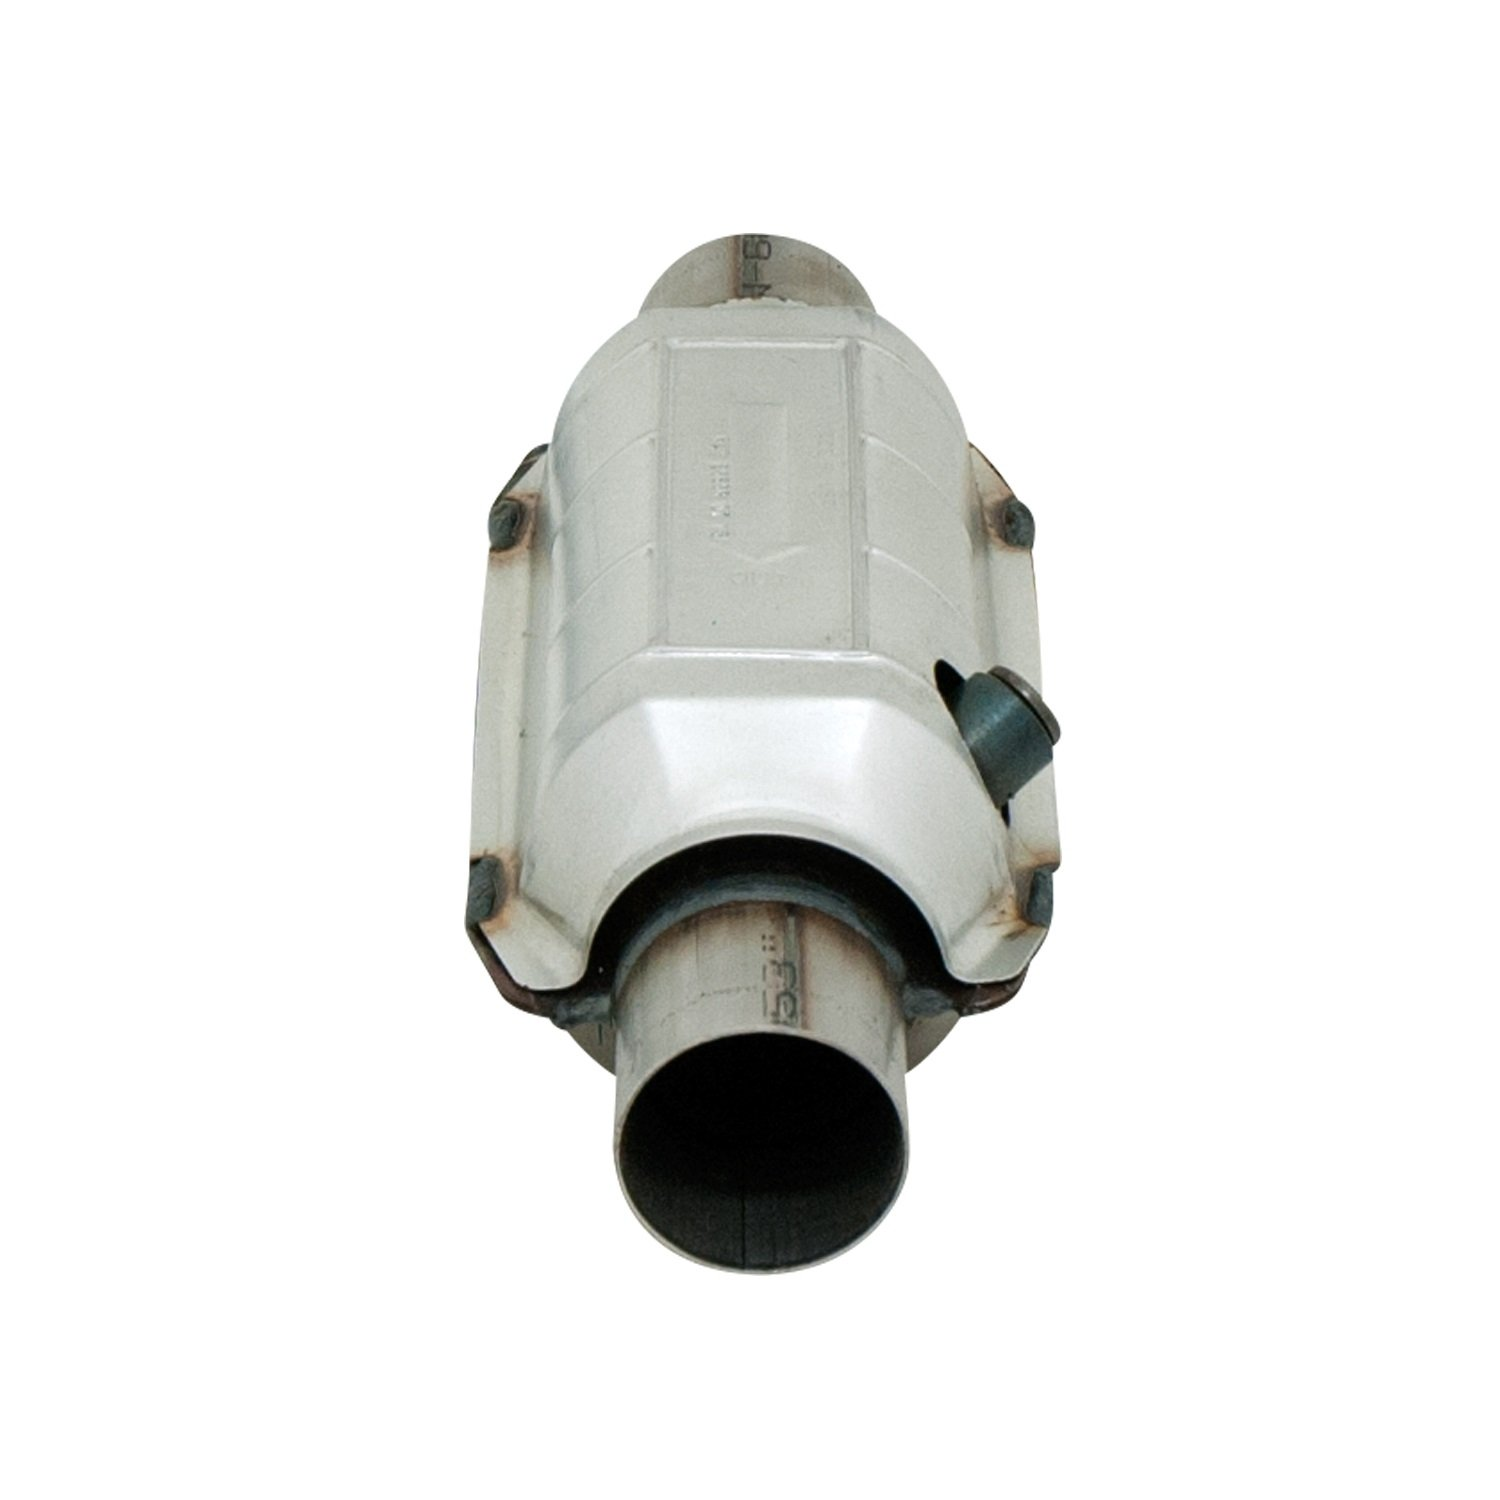 Flowmaster (2821125) 282 Series 2.5' Inlet/Outlet OBDII Universal Catalytic Converter